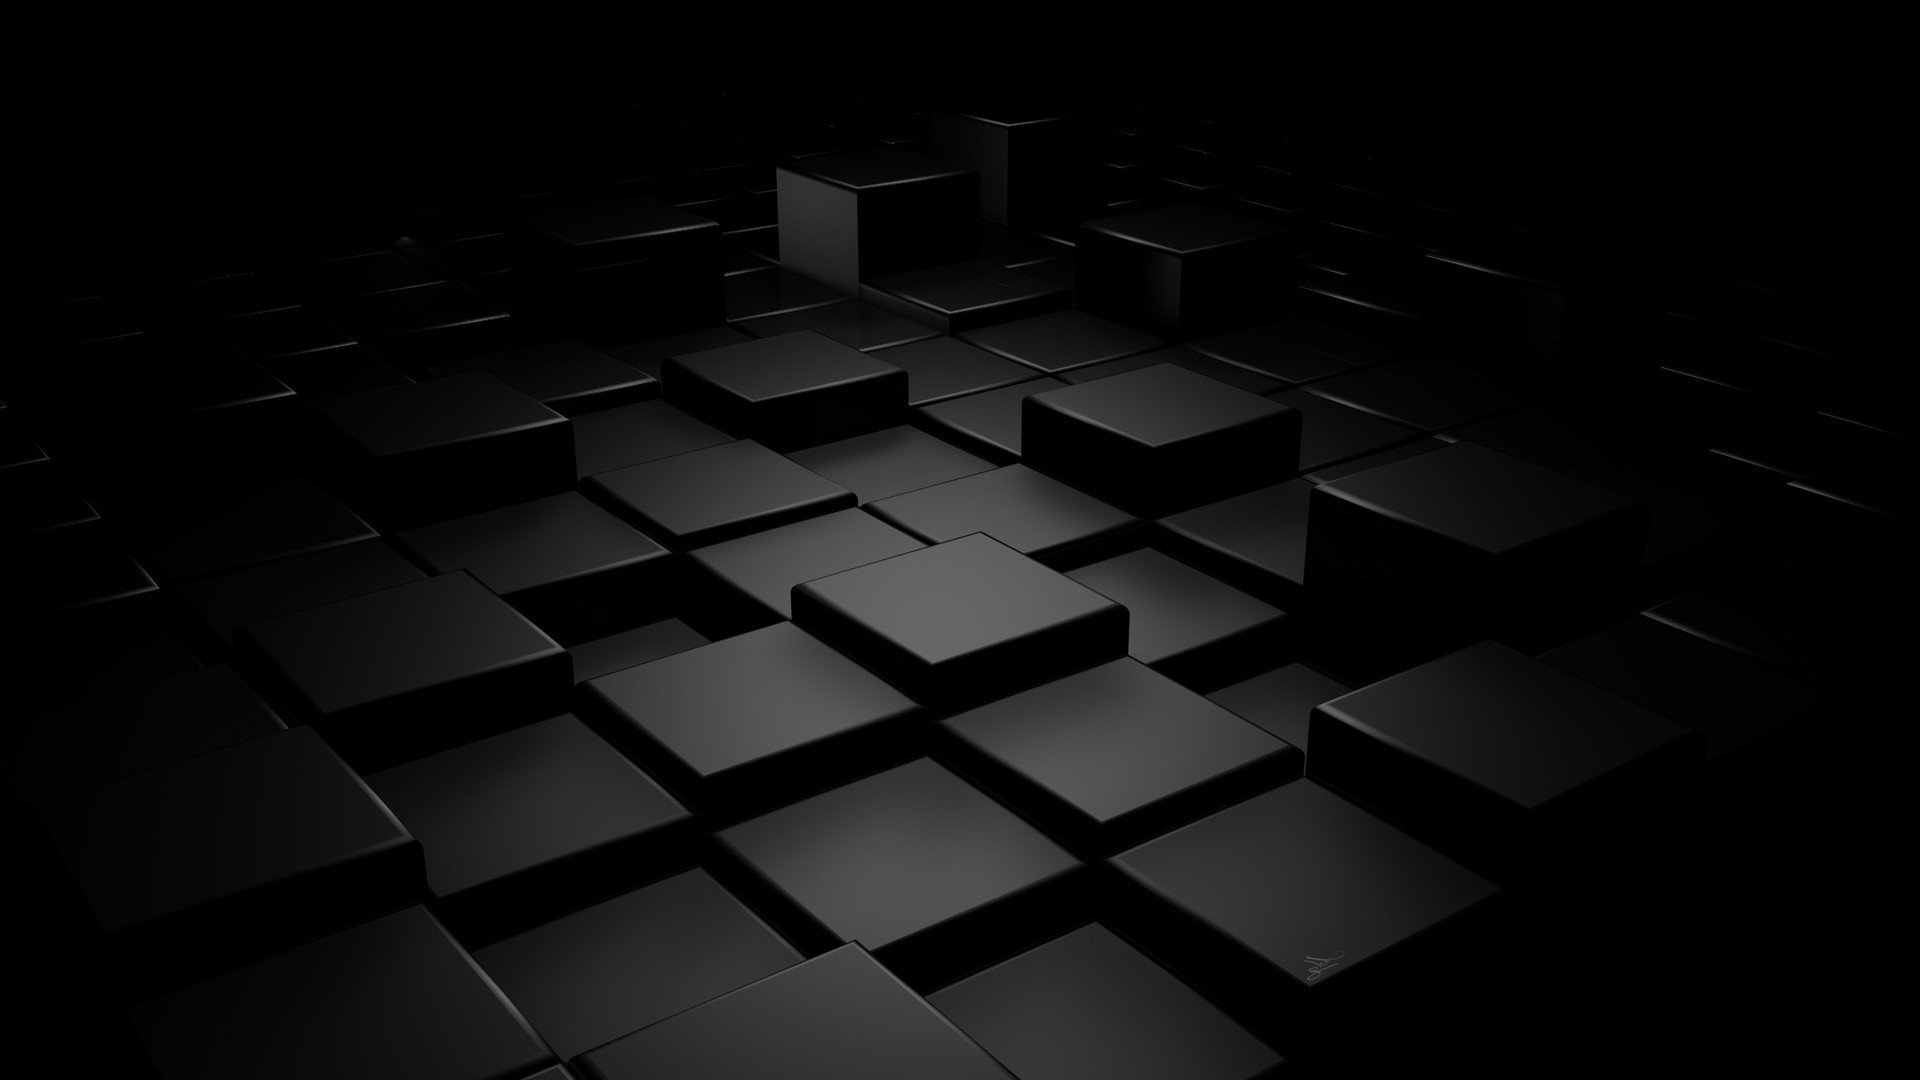 Black-In-FHD-For-Free-Download-For-Android-Desktop-wallpaper-wpc9002948